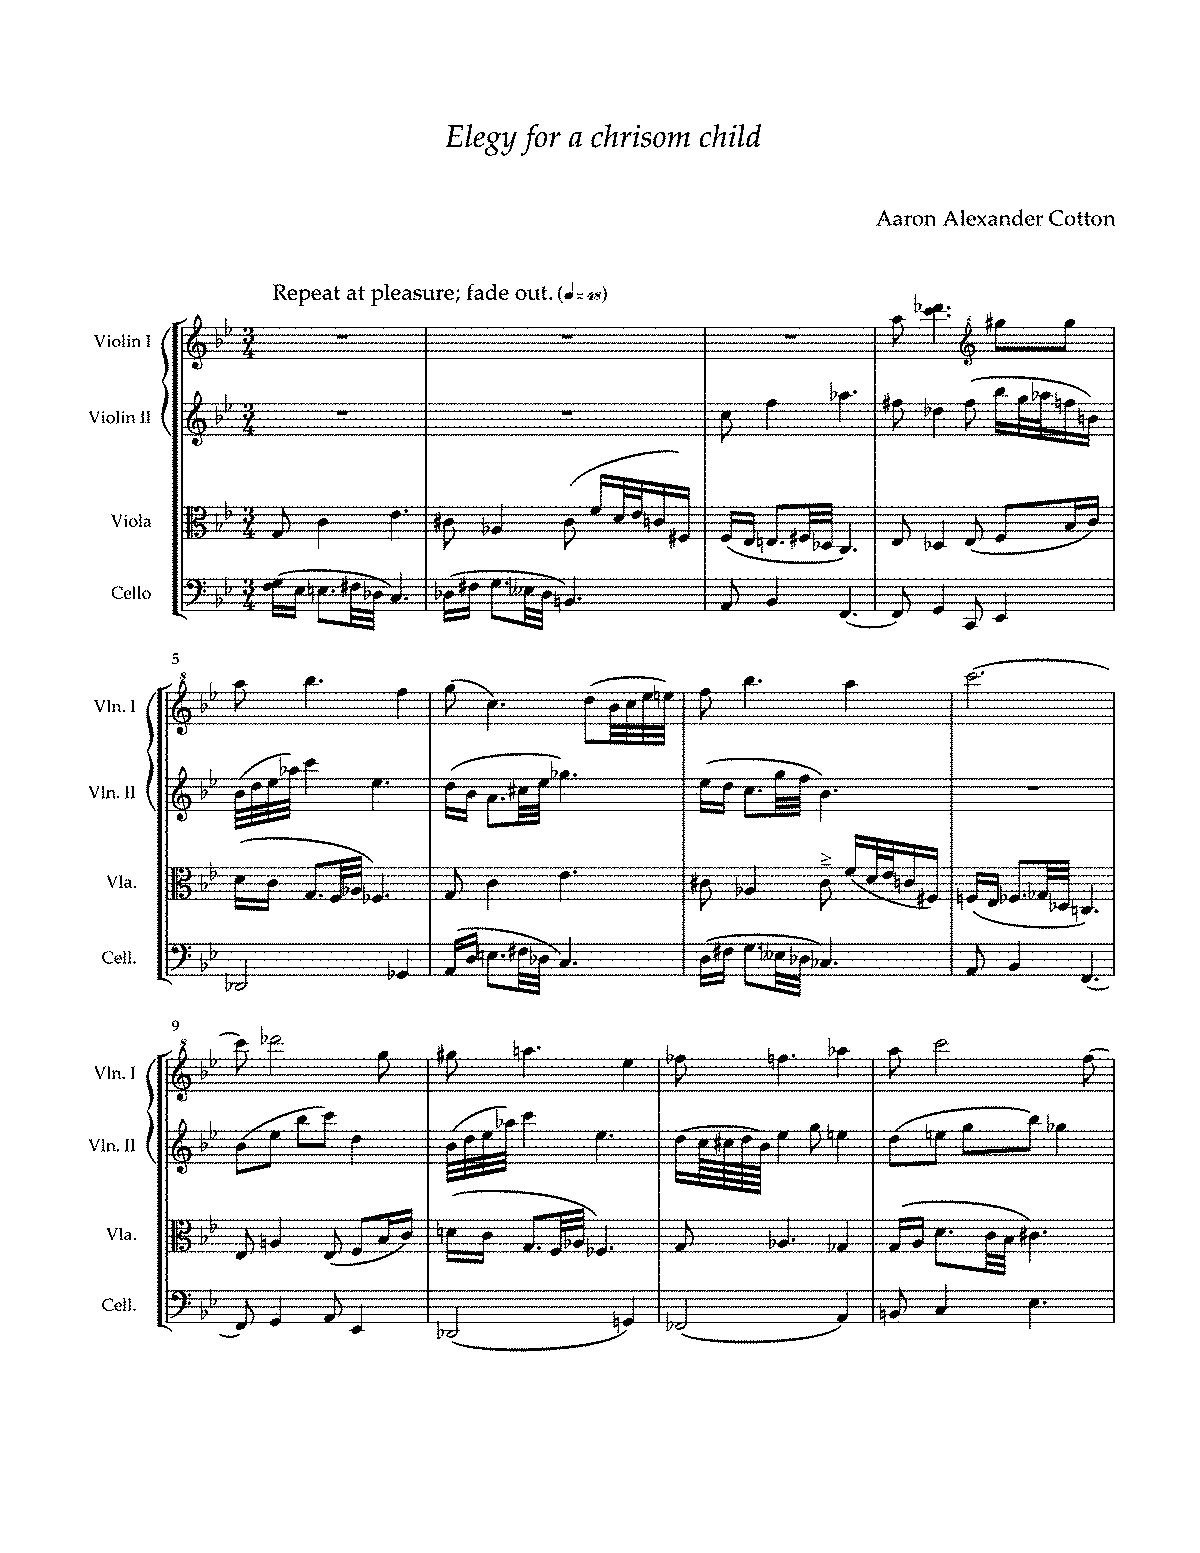 PMLP332716-Elegy for a chrisom child (for String quartet) by Aaron Alexander Cotton.pdf